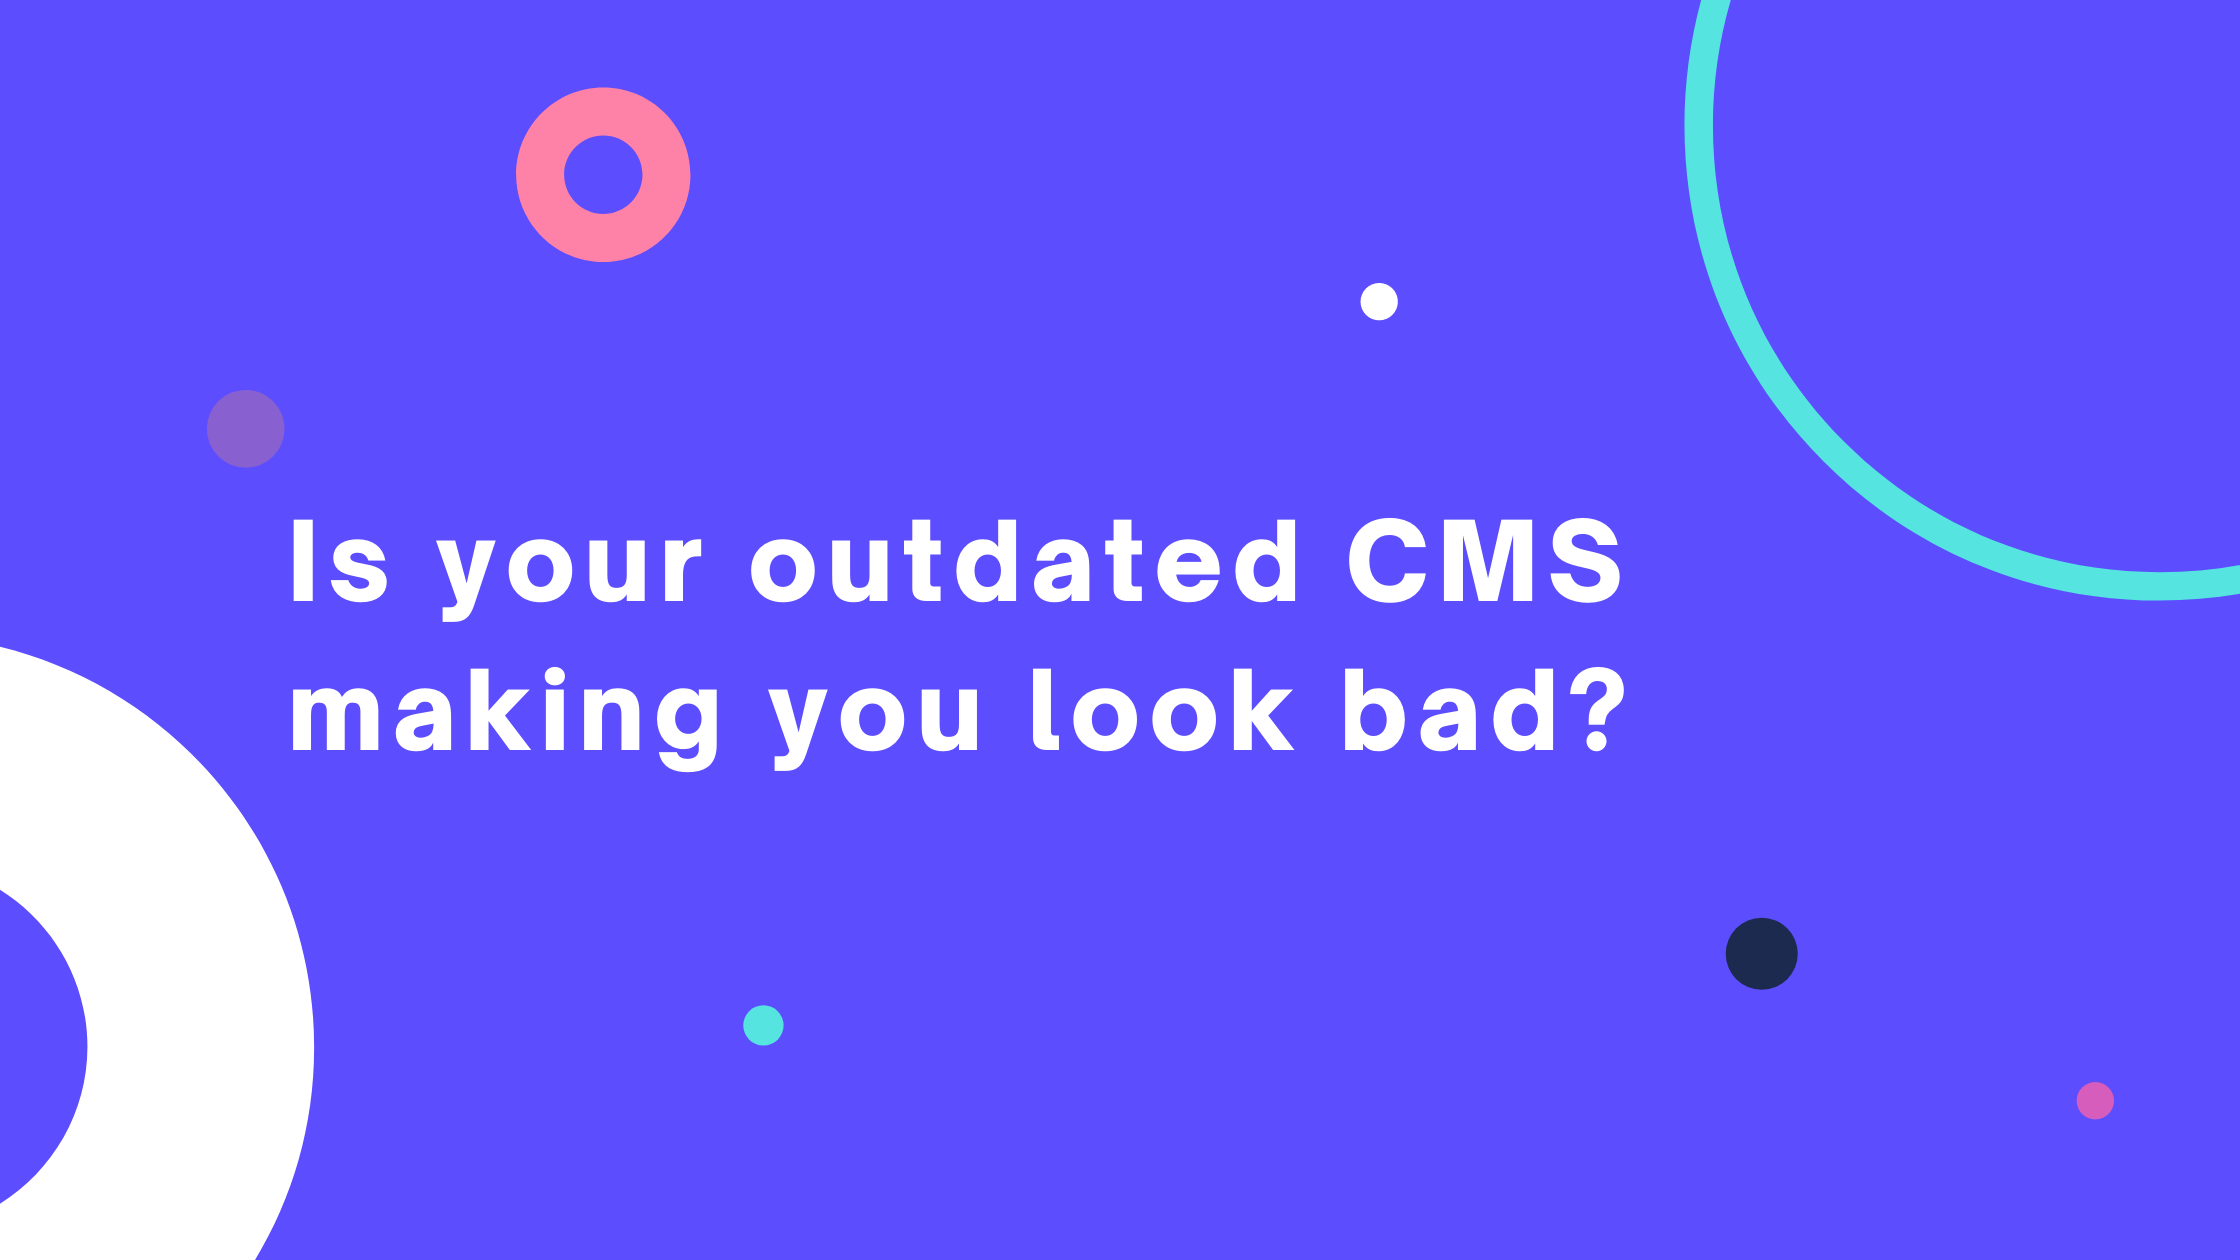 does your outdated cms make you look bad?